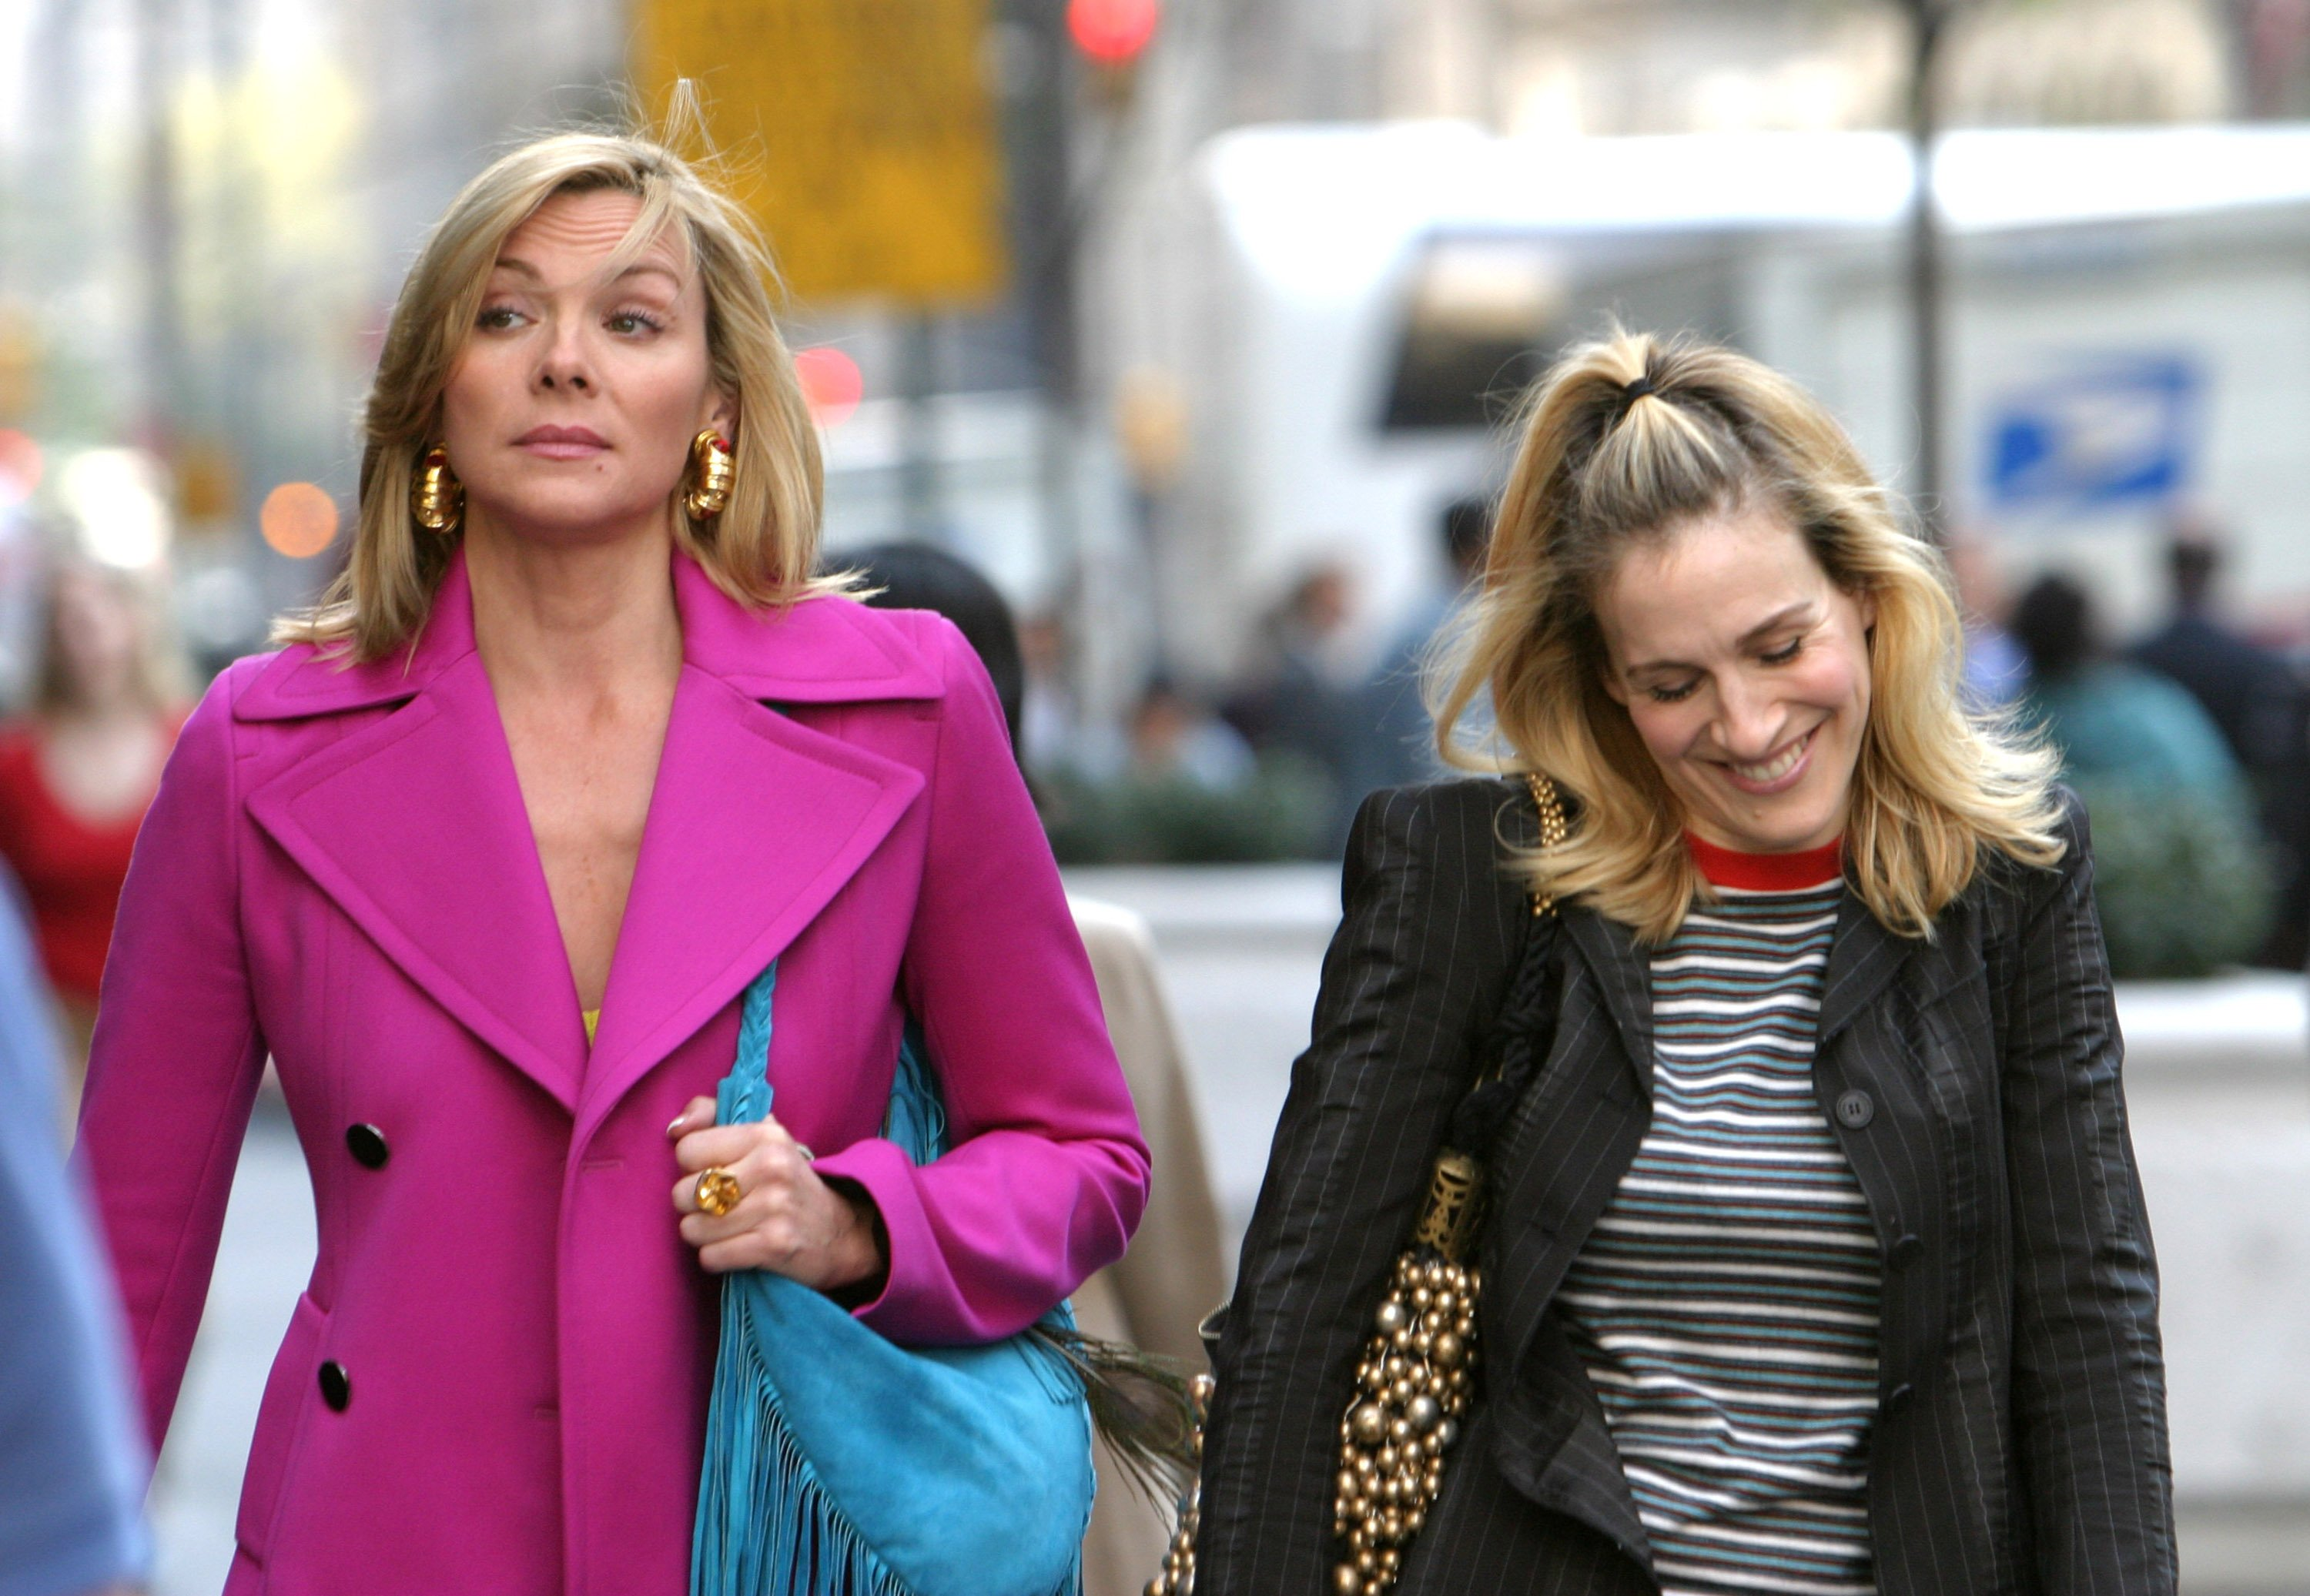 """Kim Cattrall and Sarah Jessica Parker during Kim Cattrall and Sarah Jessica Parker On Location For """"Sex And The City"""" in New York, New York. 